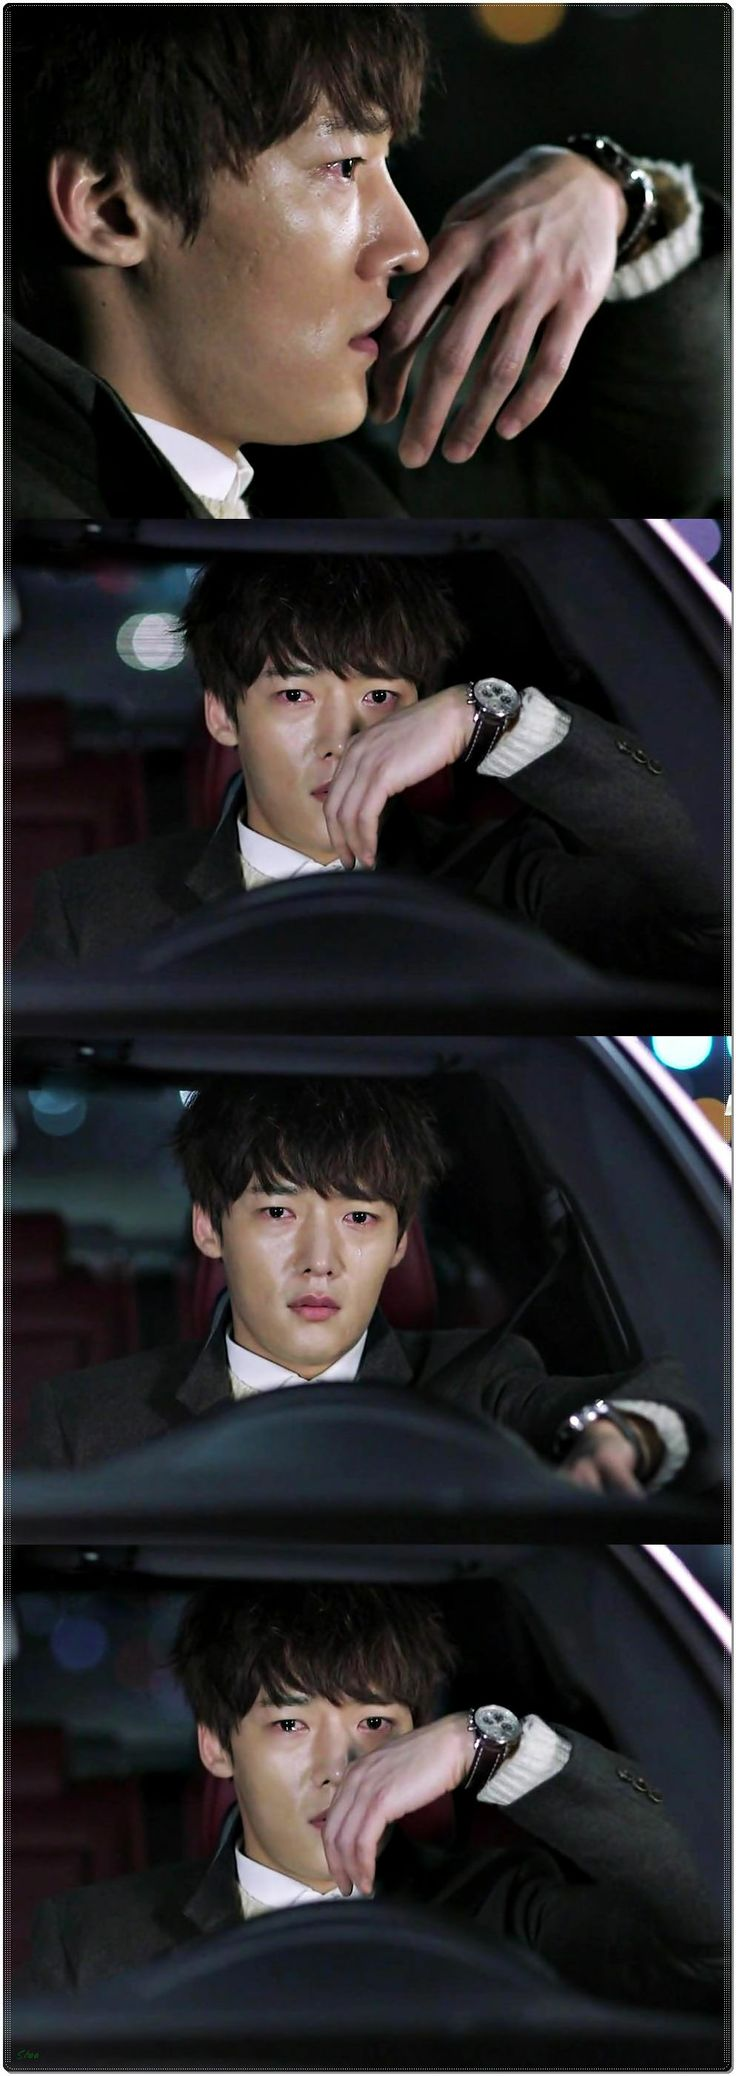 choi jin hyuk dating 2014 Moo jin-hyuk (jang hyuk) was a  introverted 23-year-old girl with zero dating experience and a tendency to blush when talking to someone she likes  choi jin .